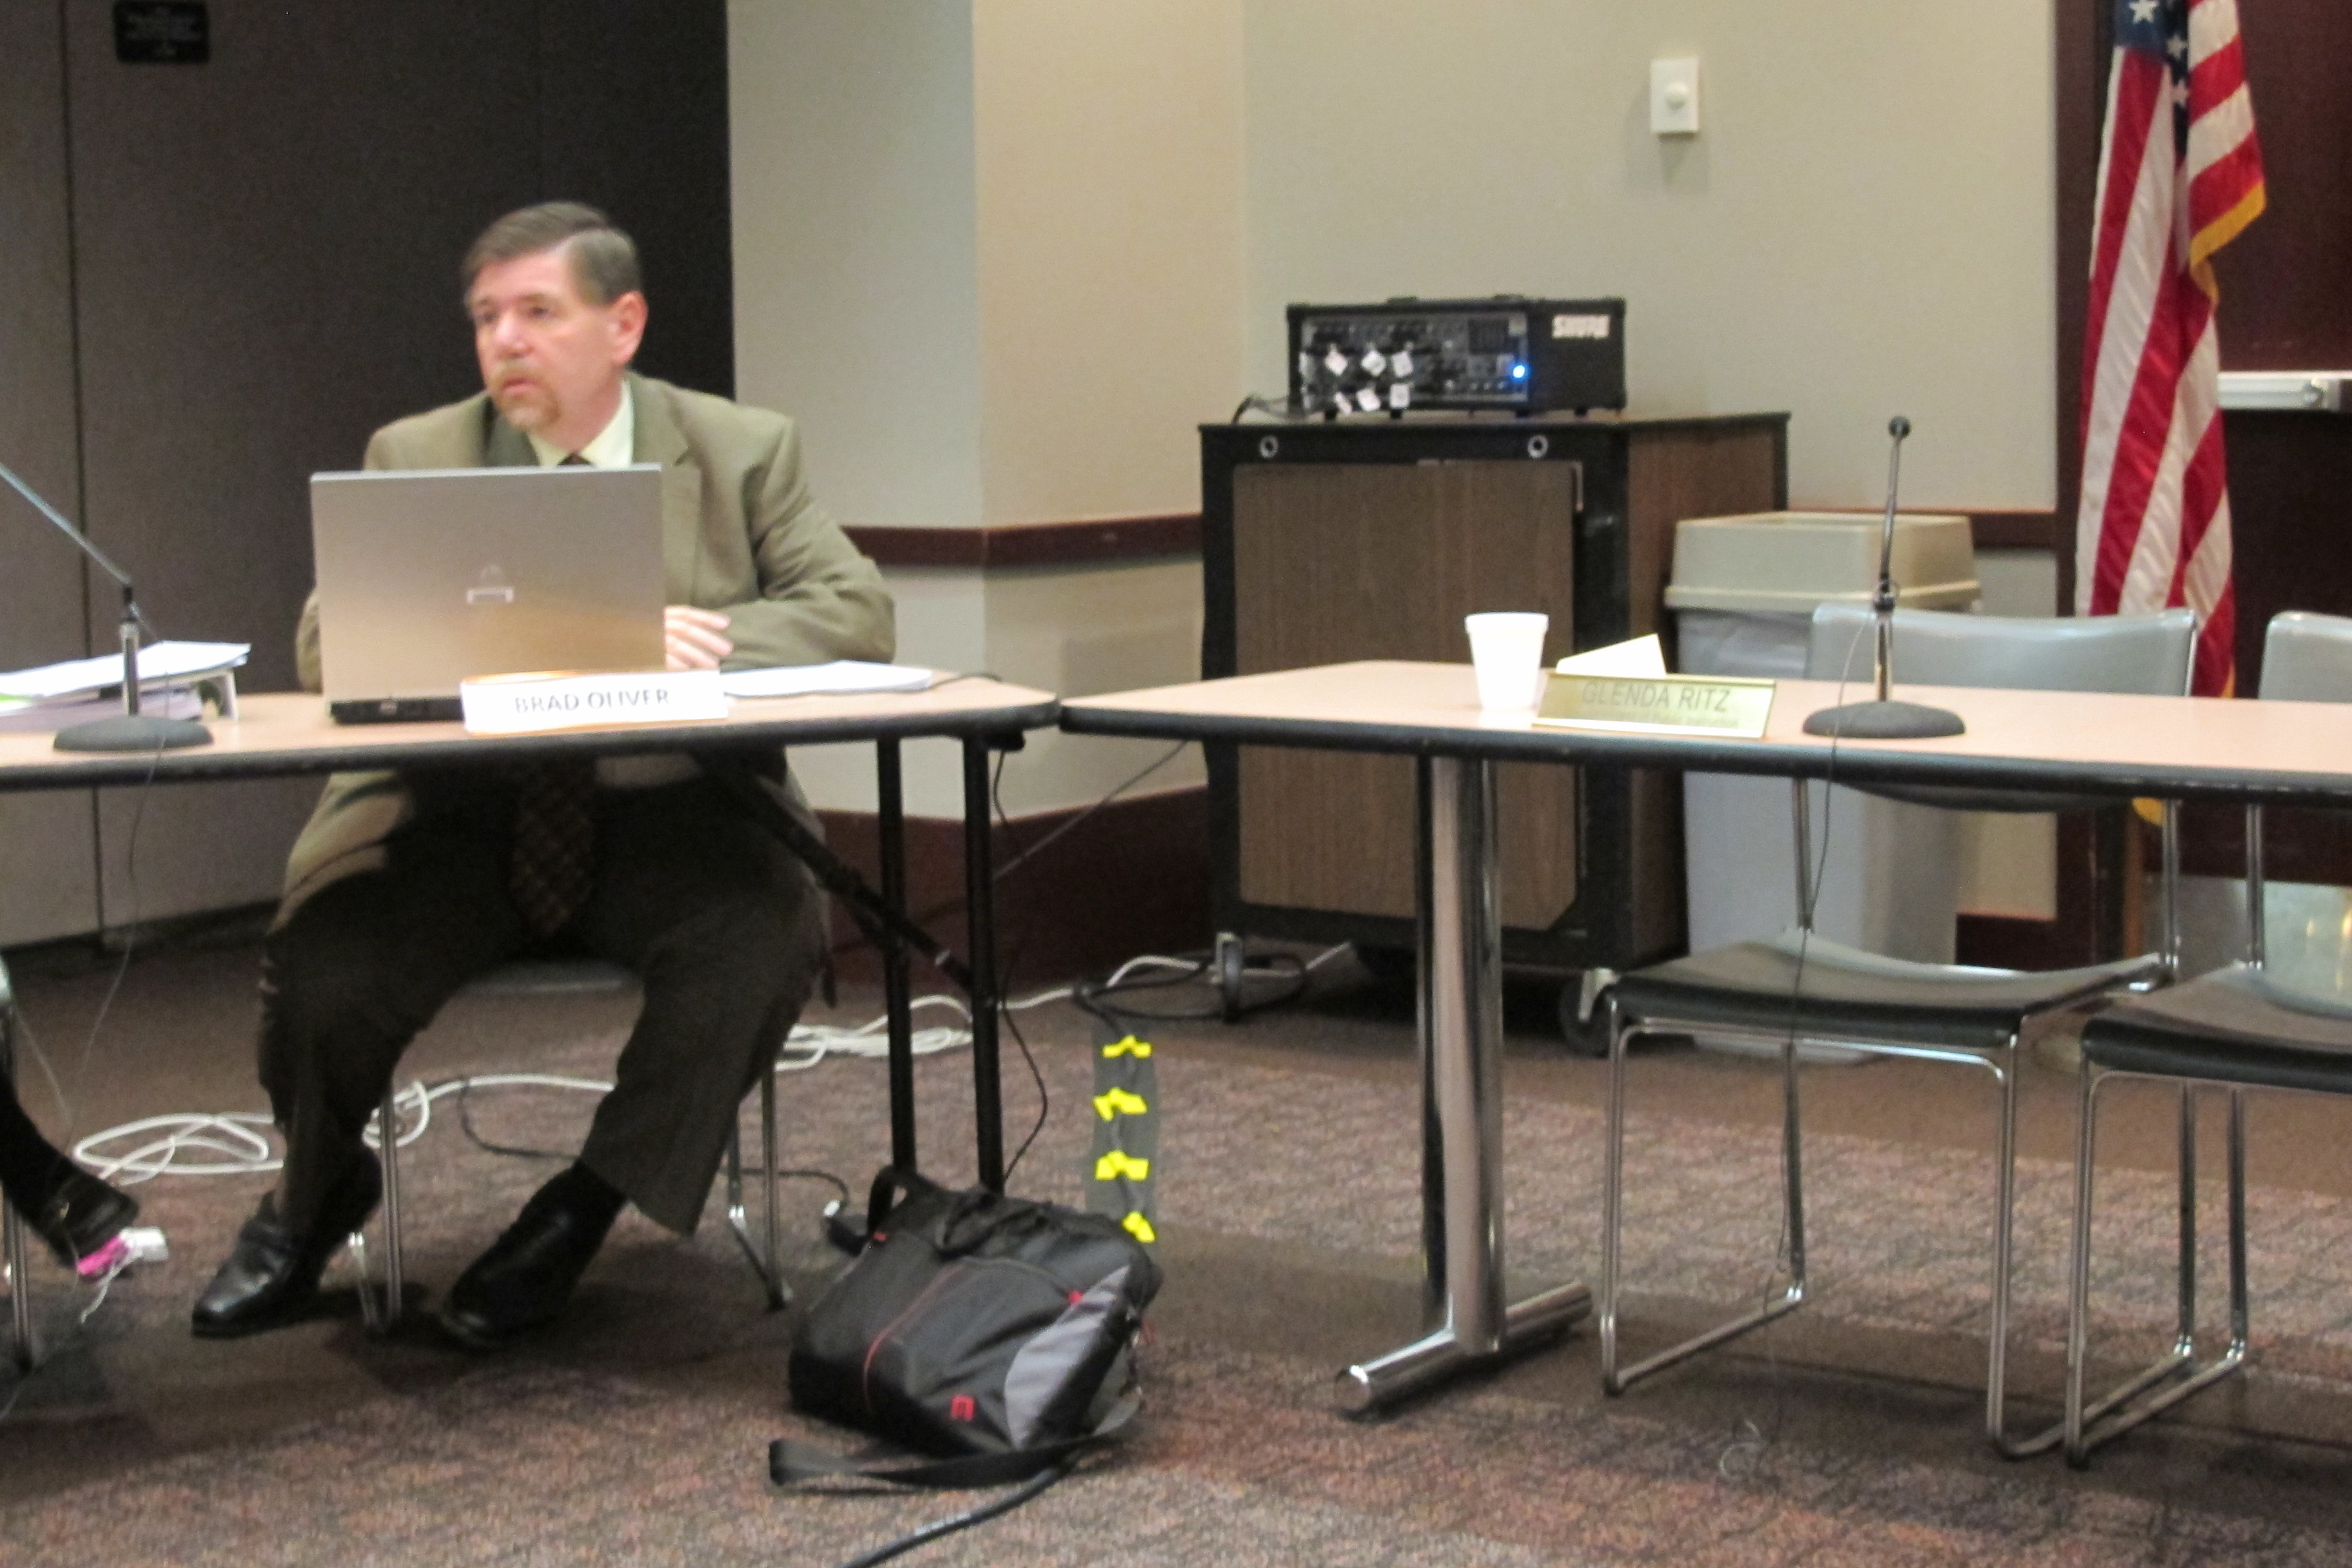 State Board of Education member Brad Oliver remains seated after state superintendent Glenda Ritz adjourned Wednesday's meeting without a vote of the panel.